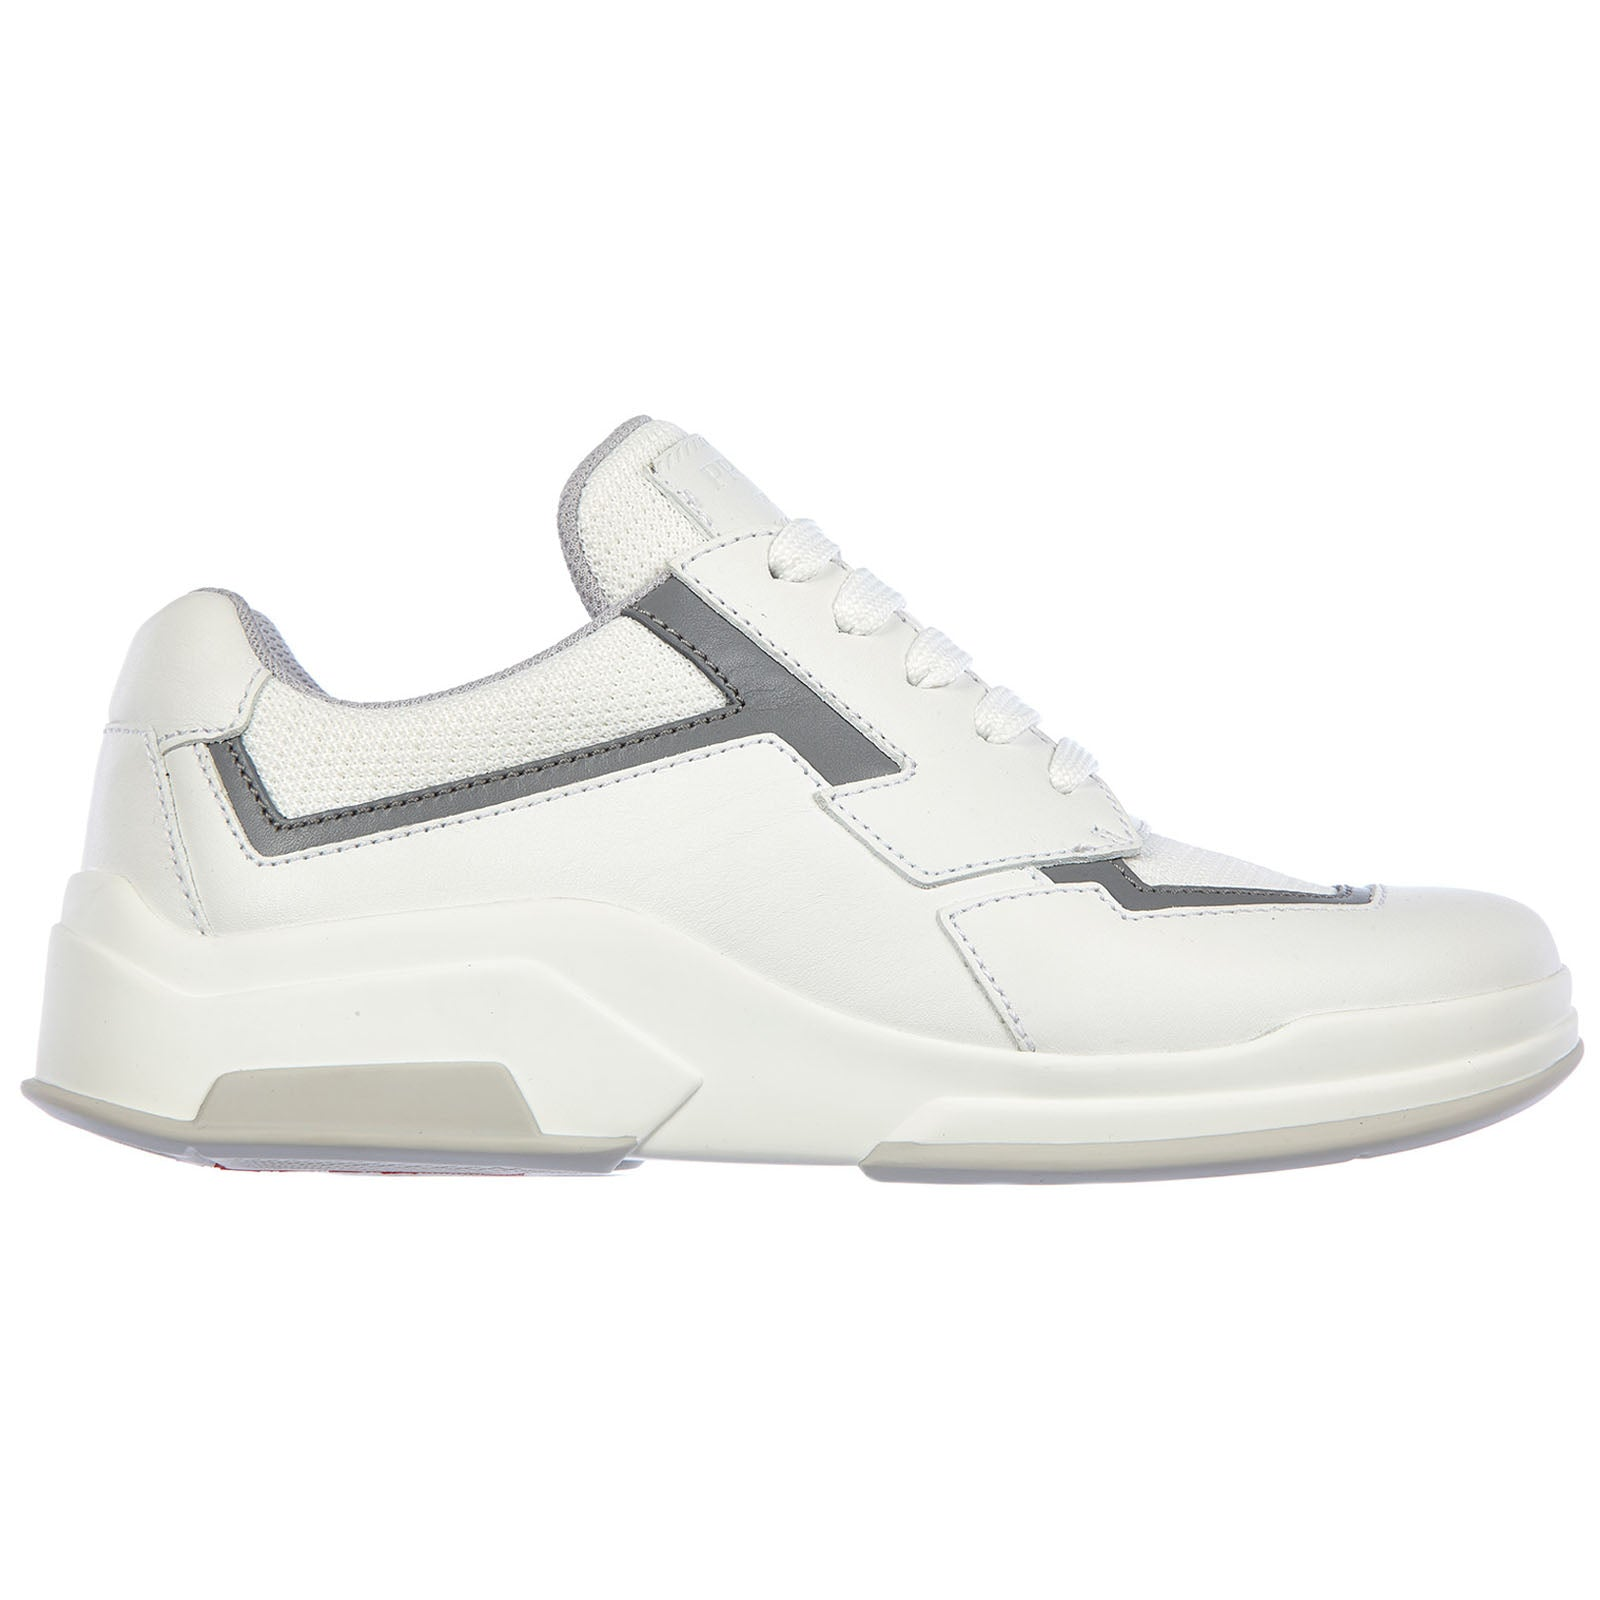 Prada Plume Bike Sneakers